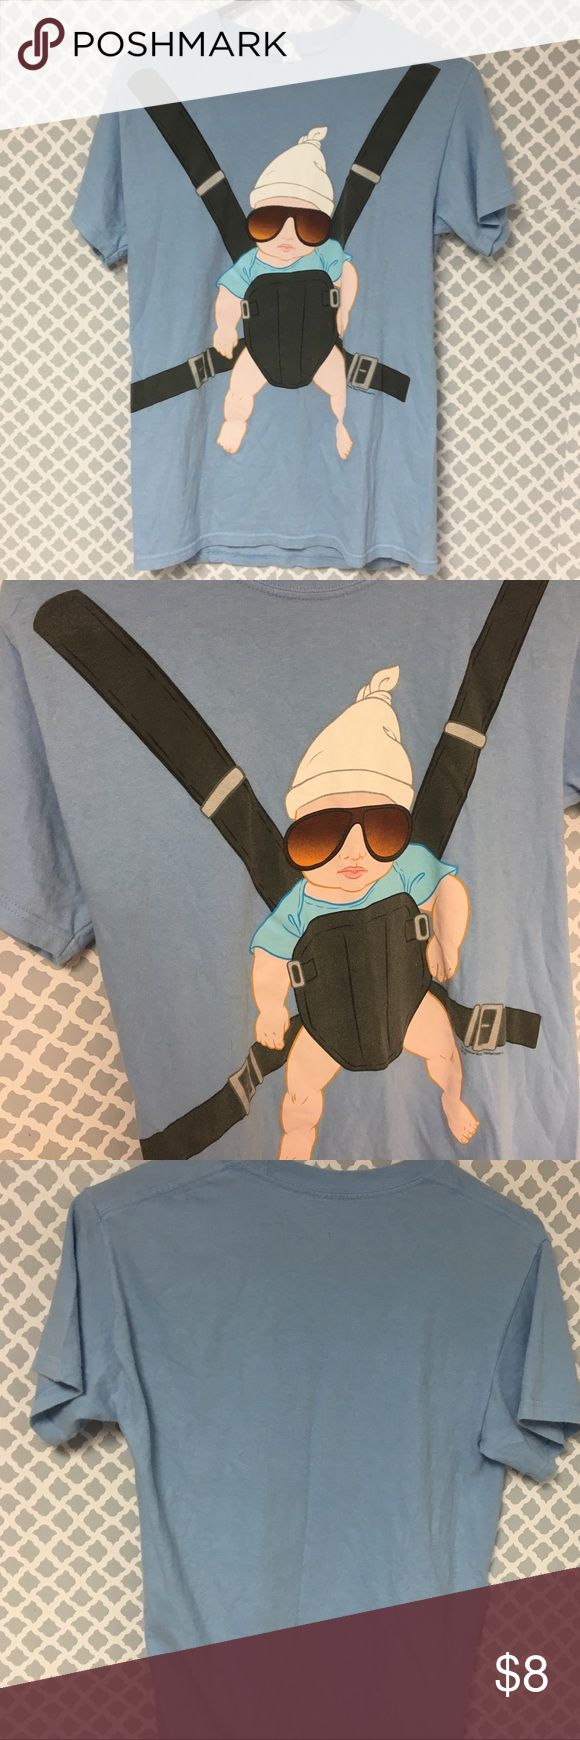 The Hangover Baby T Shirt 🔘Description: The Hangover Baby T Shirt Men's Size Small  🔘Condition: Good   🔘Material: 100% Cotton  🔘Measurements:       Pit to Pit – 18 inches       Shoulder to Hem – 27 inches    ⭐️ 15% Off All Bundles! 🛍    💞Thanks for stopping by! 😘 Shirts Tees - Short Sleeve